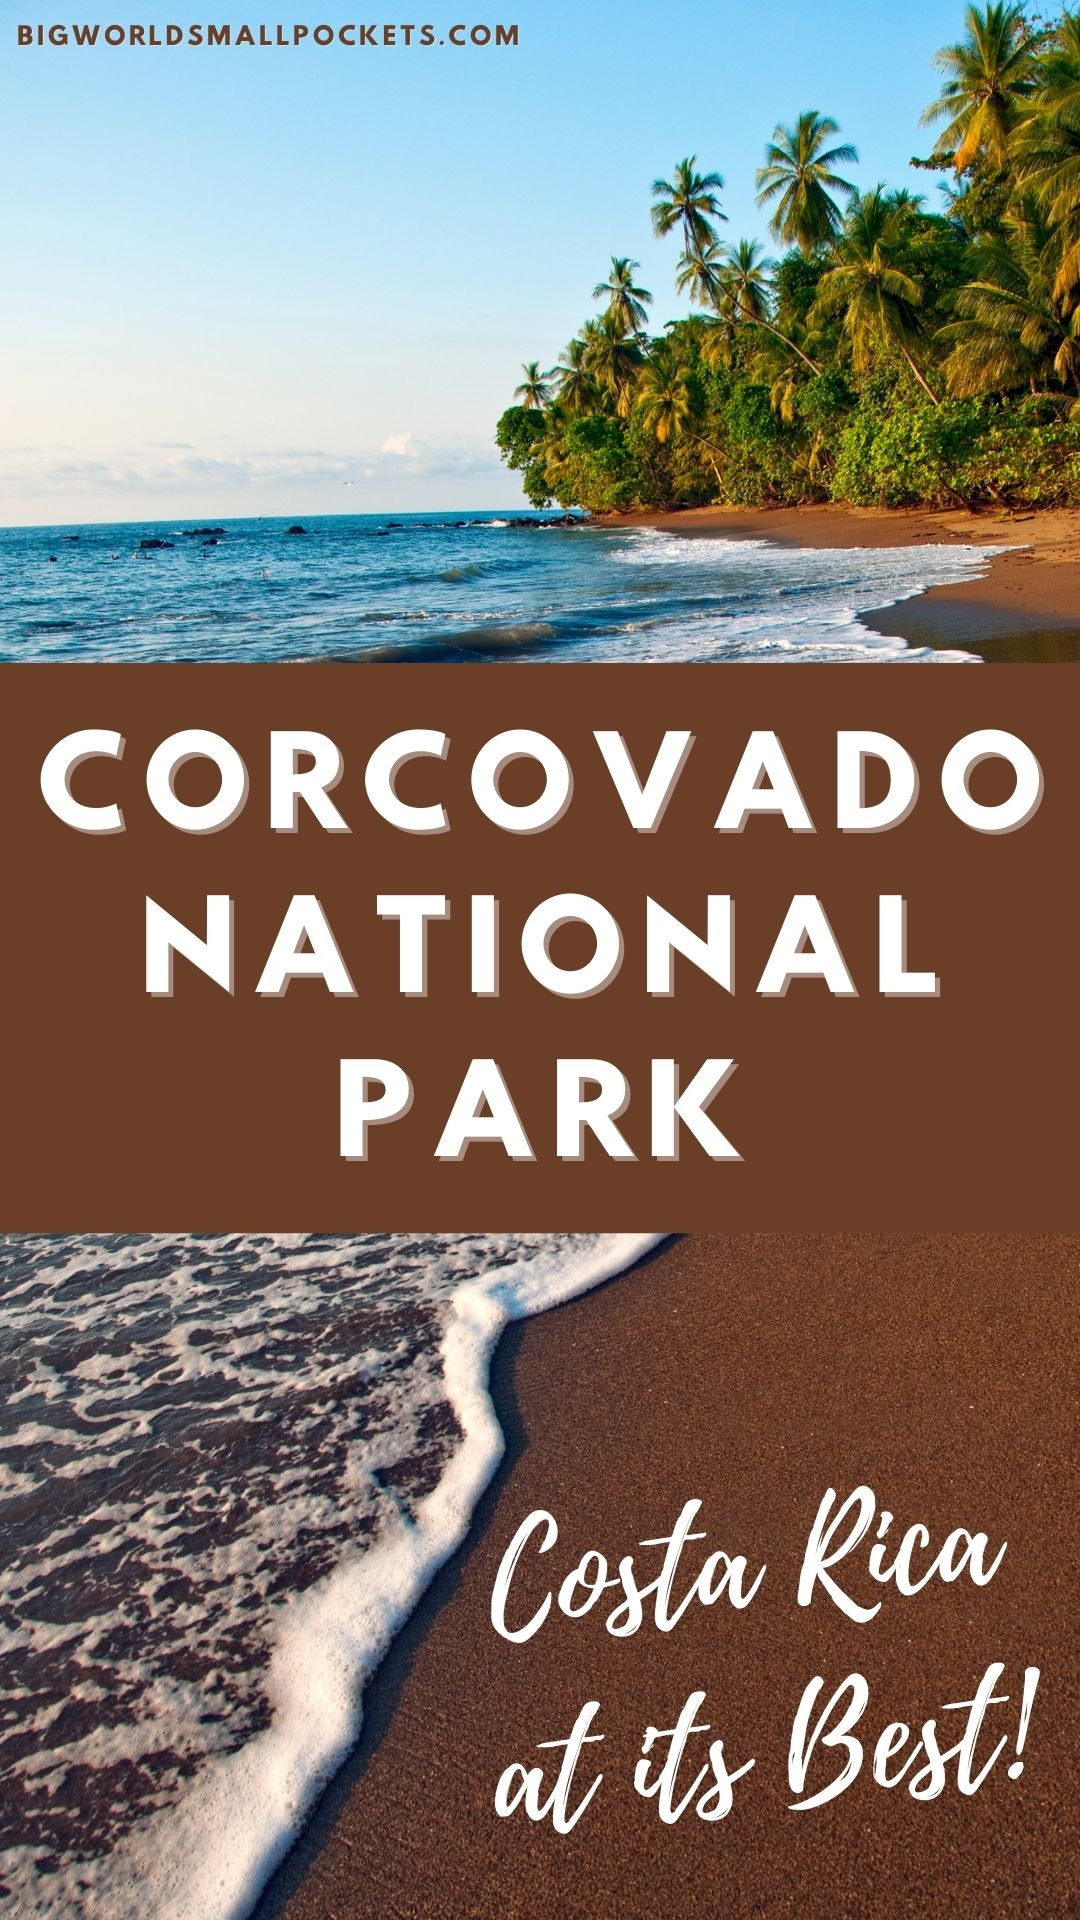 Corcovado National Park Costa Rica at Its Best!